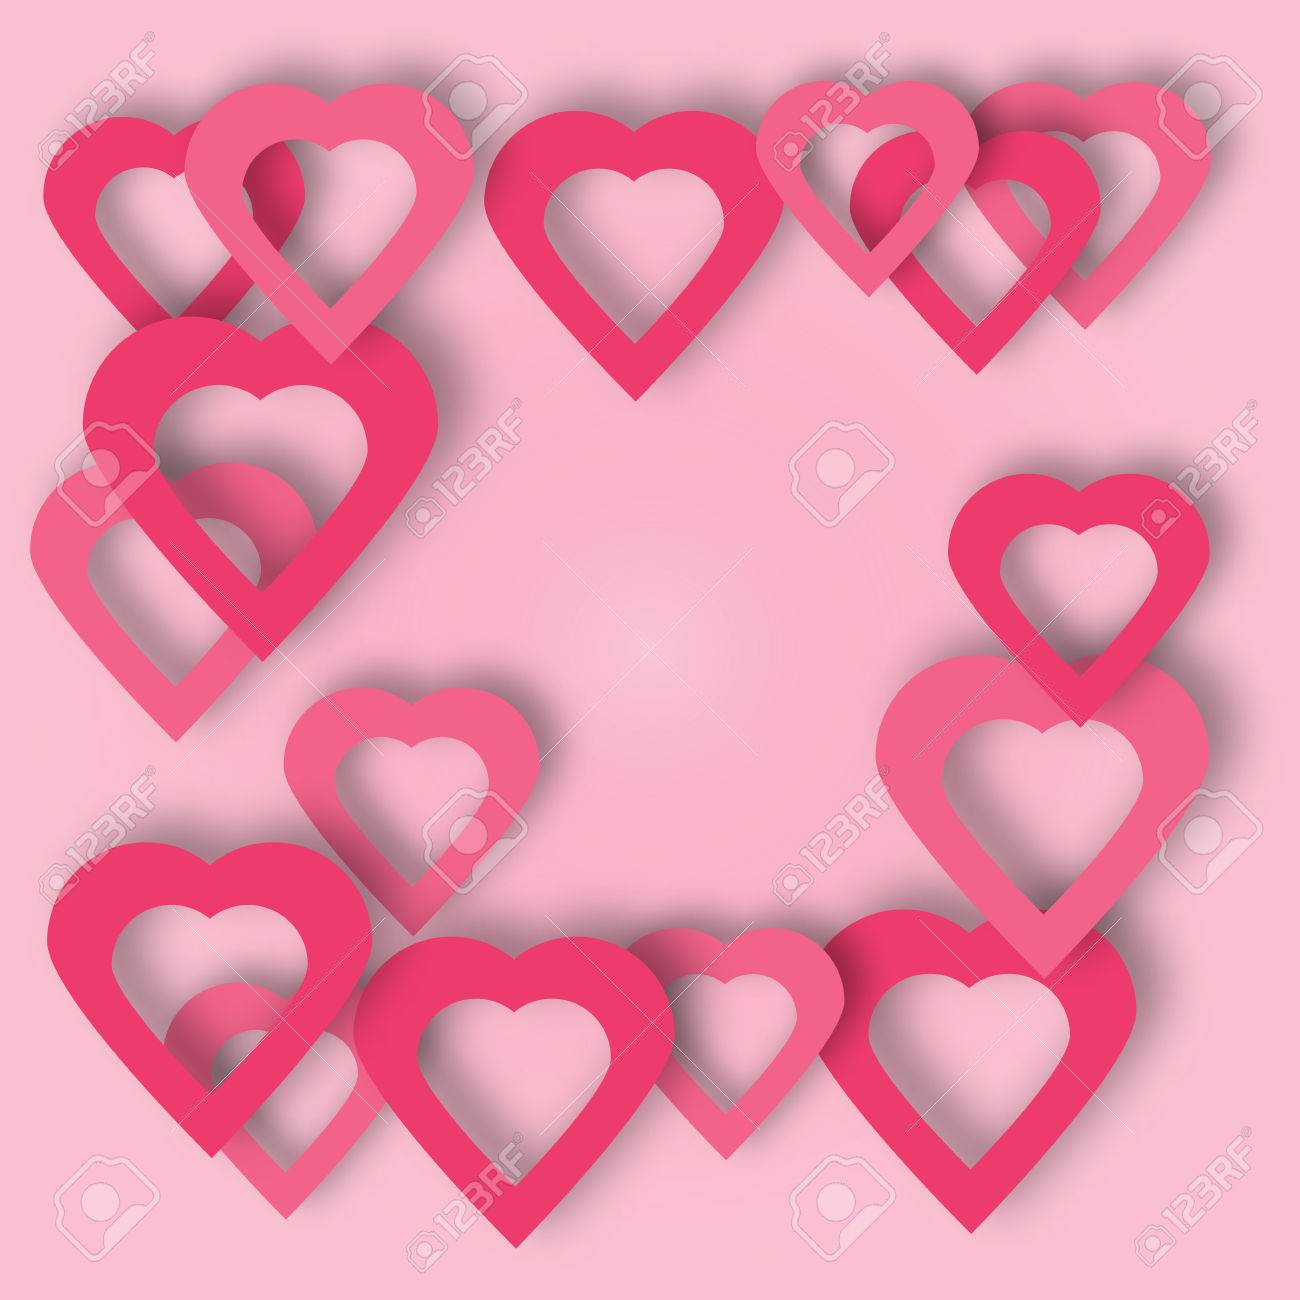 Beautiful Hearts Vector Background Or Card. Bright Pink Paper ...